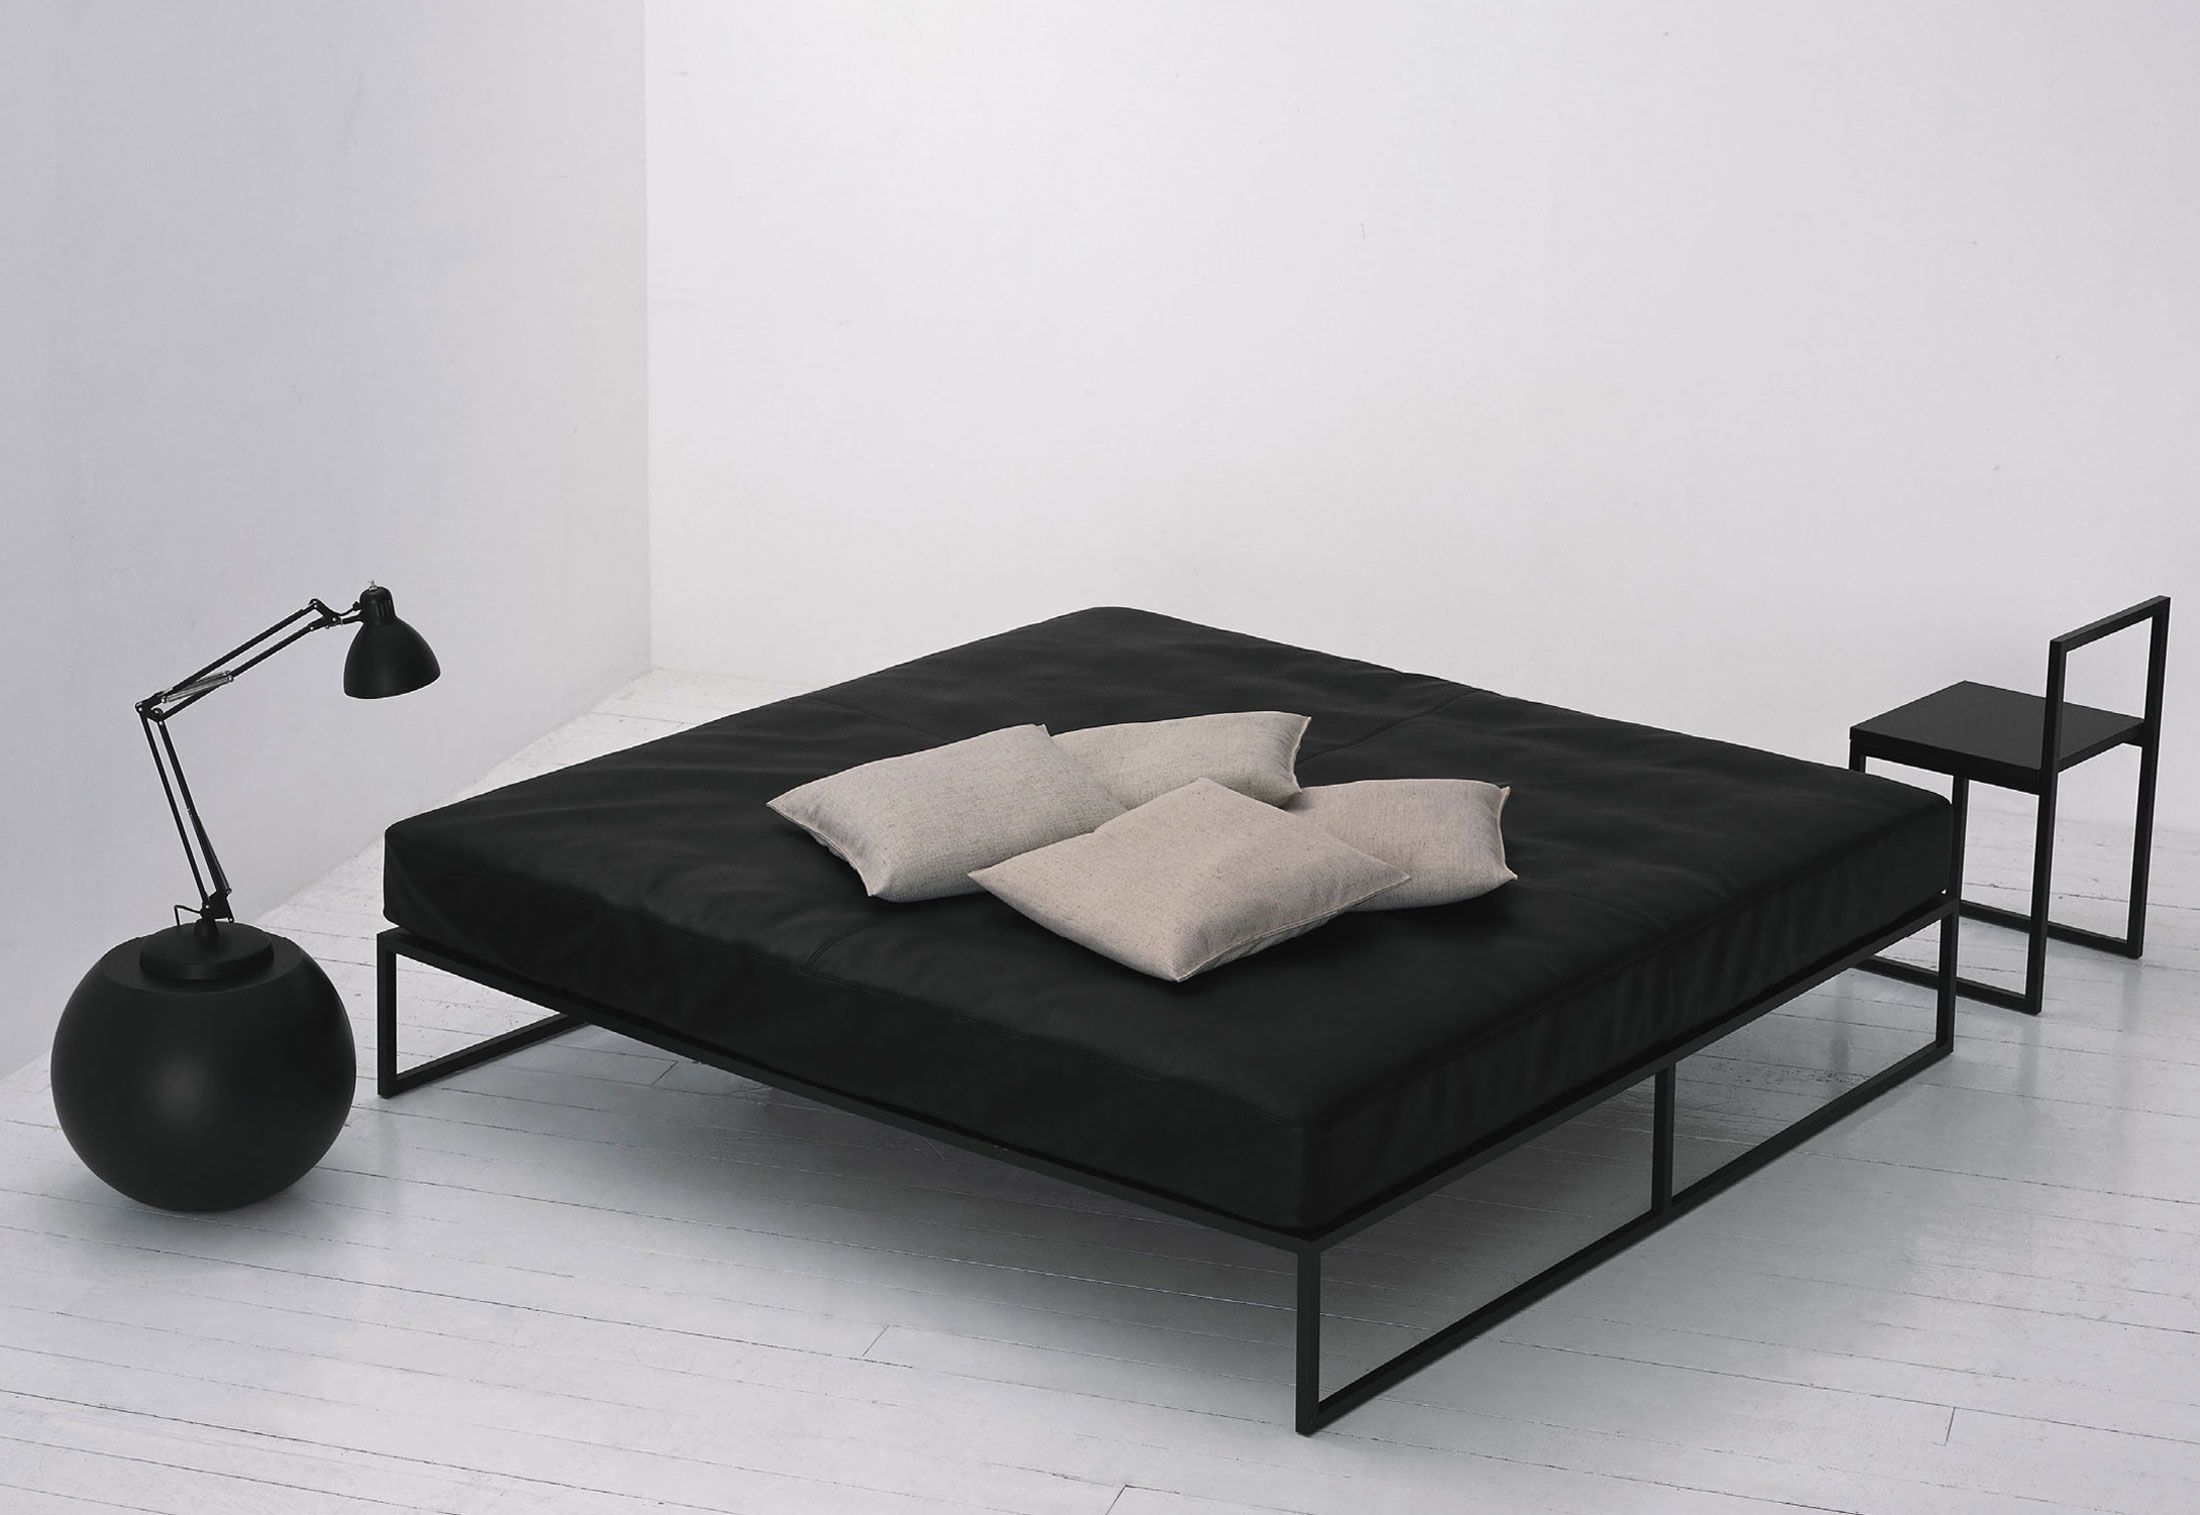 A g fronzoni cappellini fronzoni 39 64 double bed m bel for Bett industriedesign